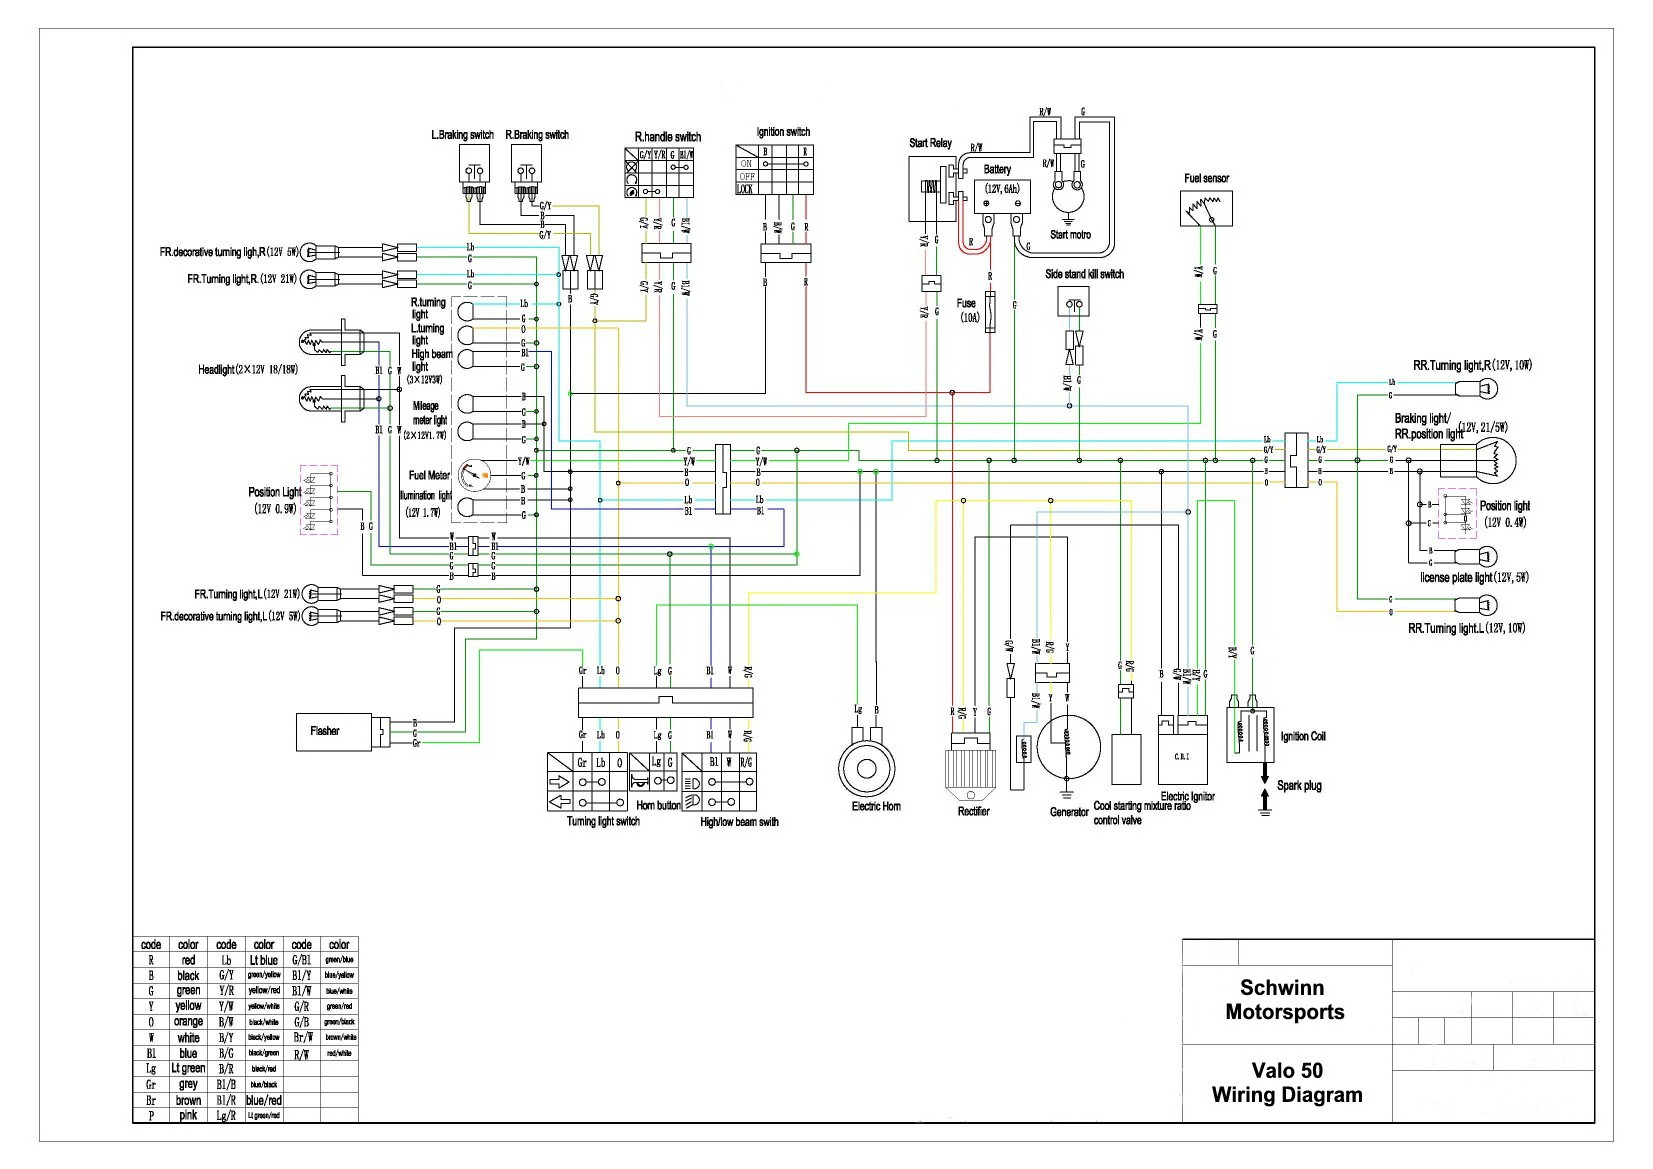 vw polo vivo radio wiring diagram